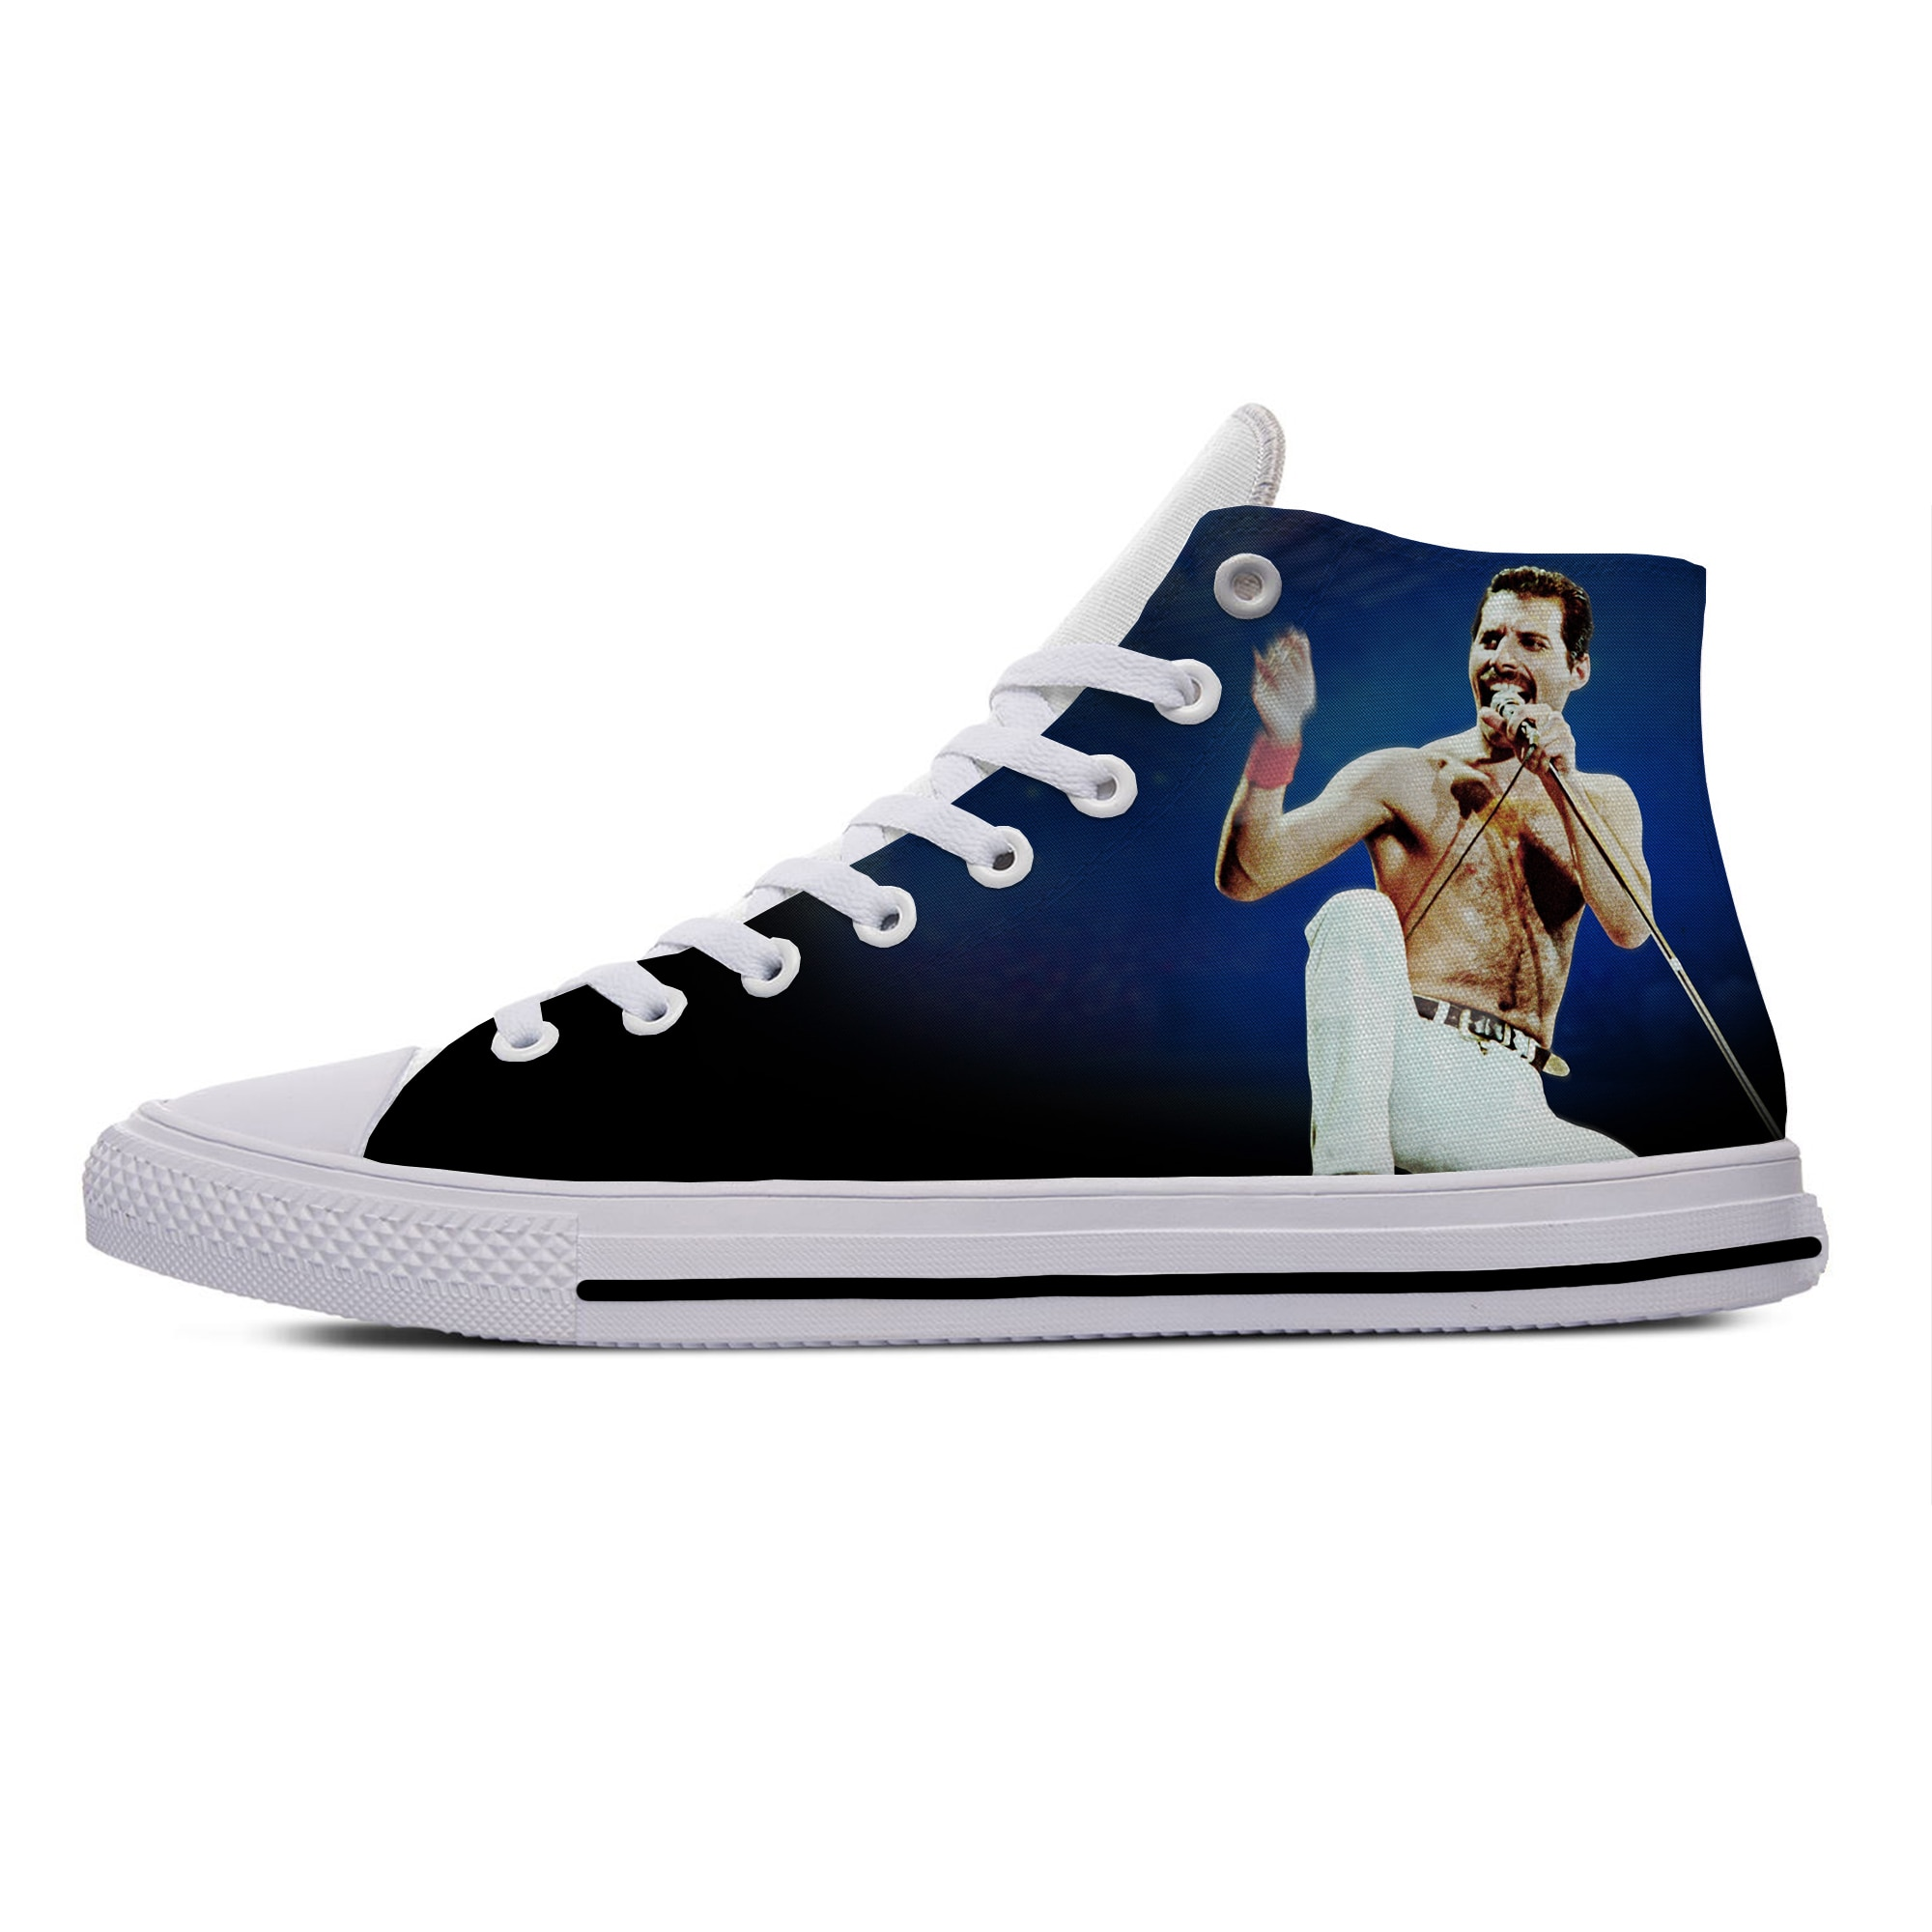 Fashion Casual Canvas Shoes Freddie Mercury The Show Must Go On Rock High Top Lightweight Breathable 3D Print Men women Sneakers